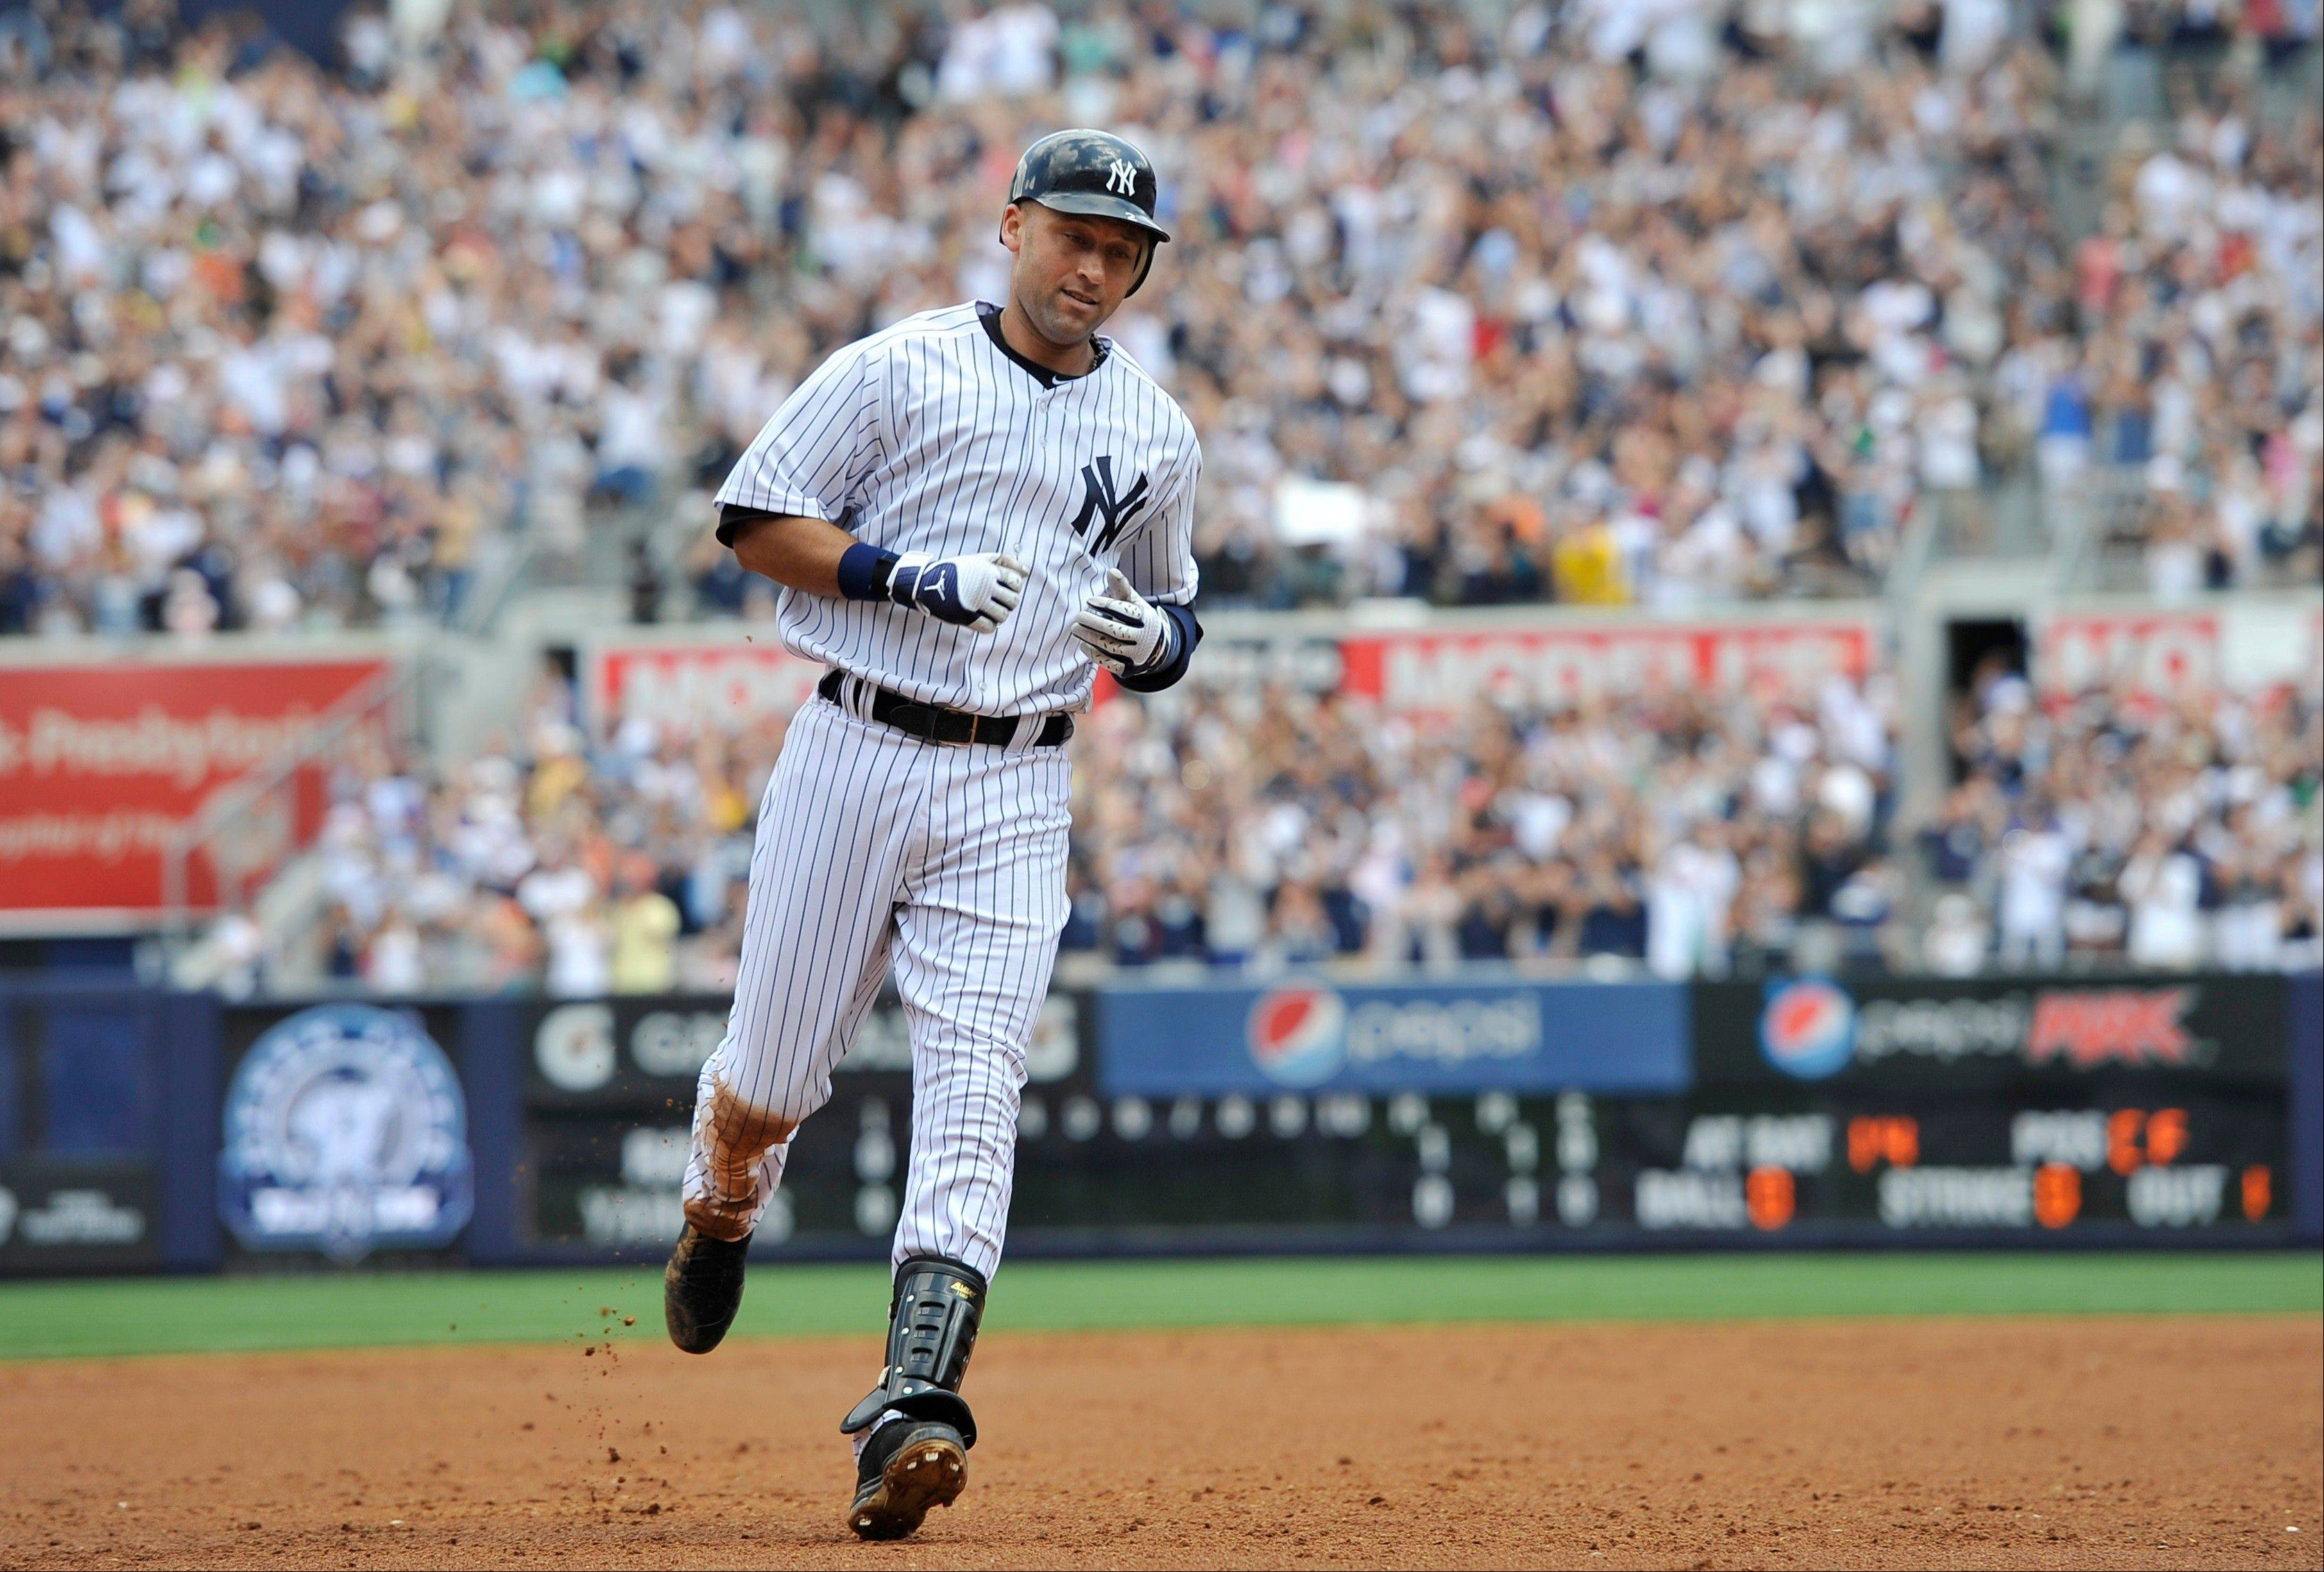 Yankees shortstop Derek Jeter rounds third base after he hit a solo home run, his 3,000th career hit, off Tampa Bay Rays starting pitcher David Price in the third inning Saturday at Yankee Stadium.